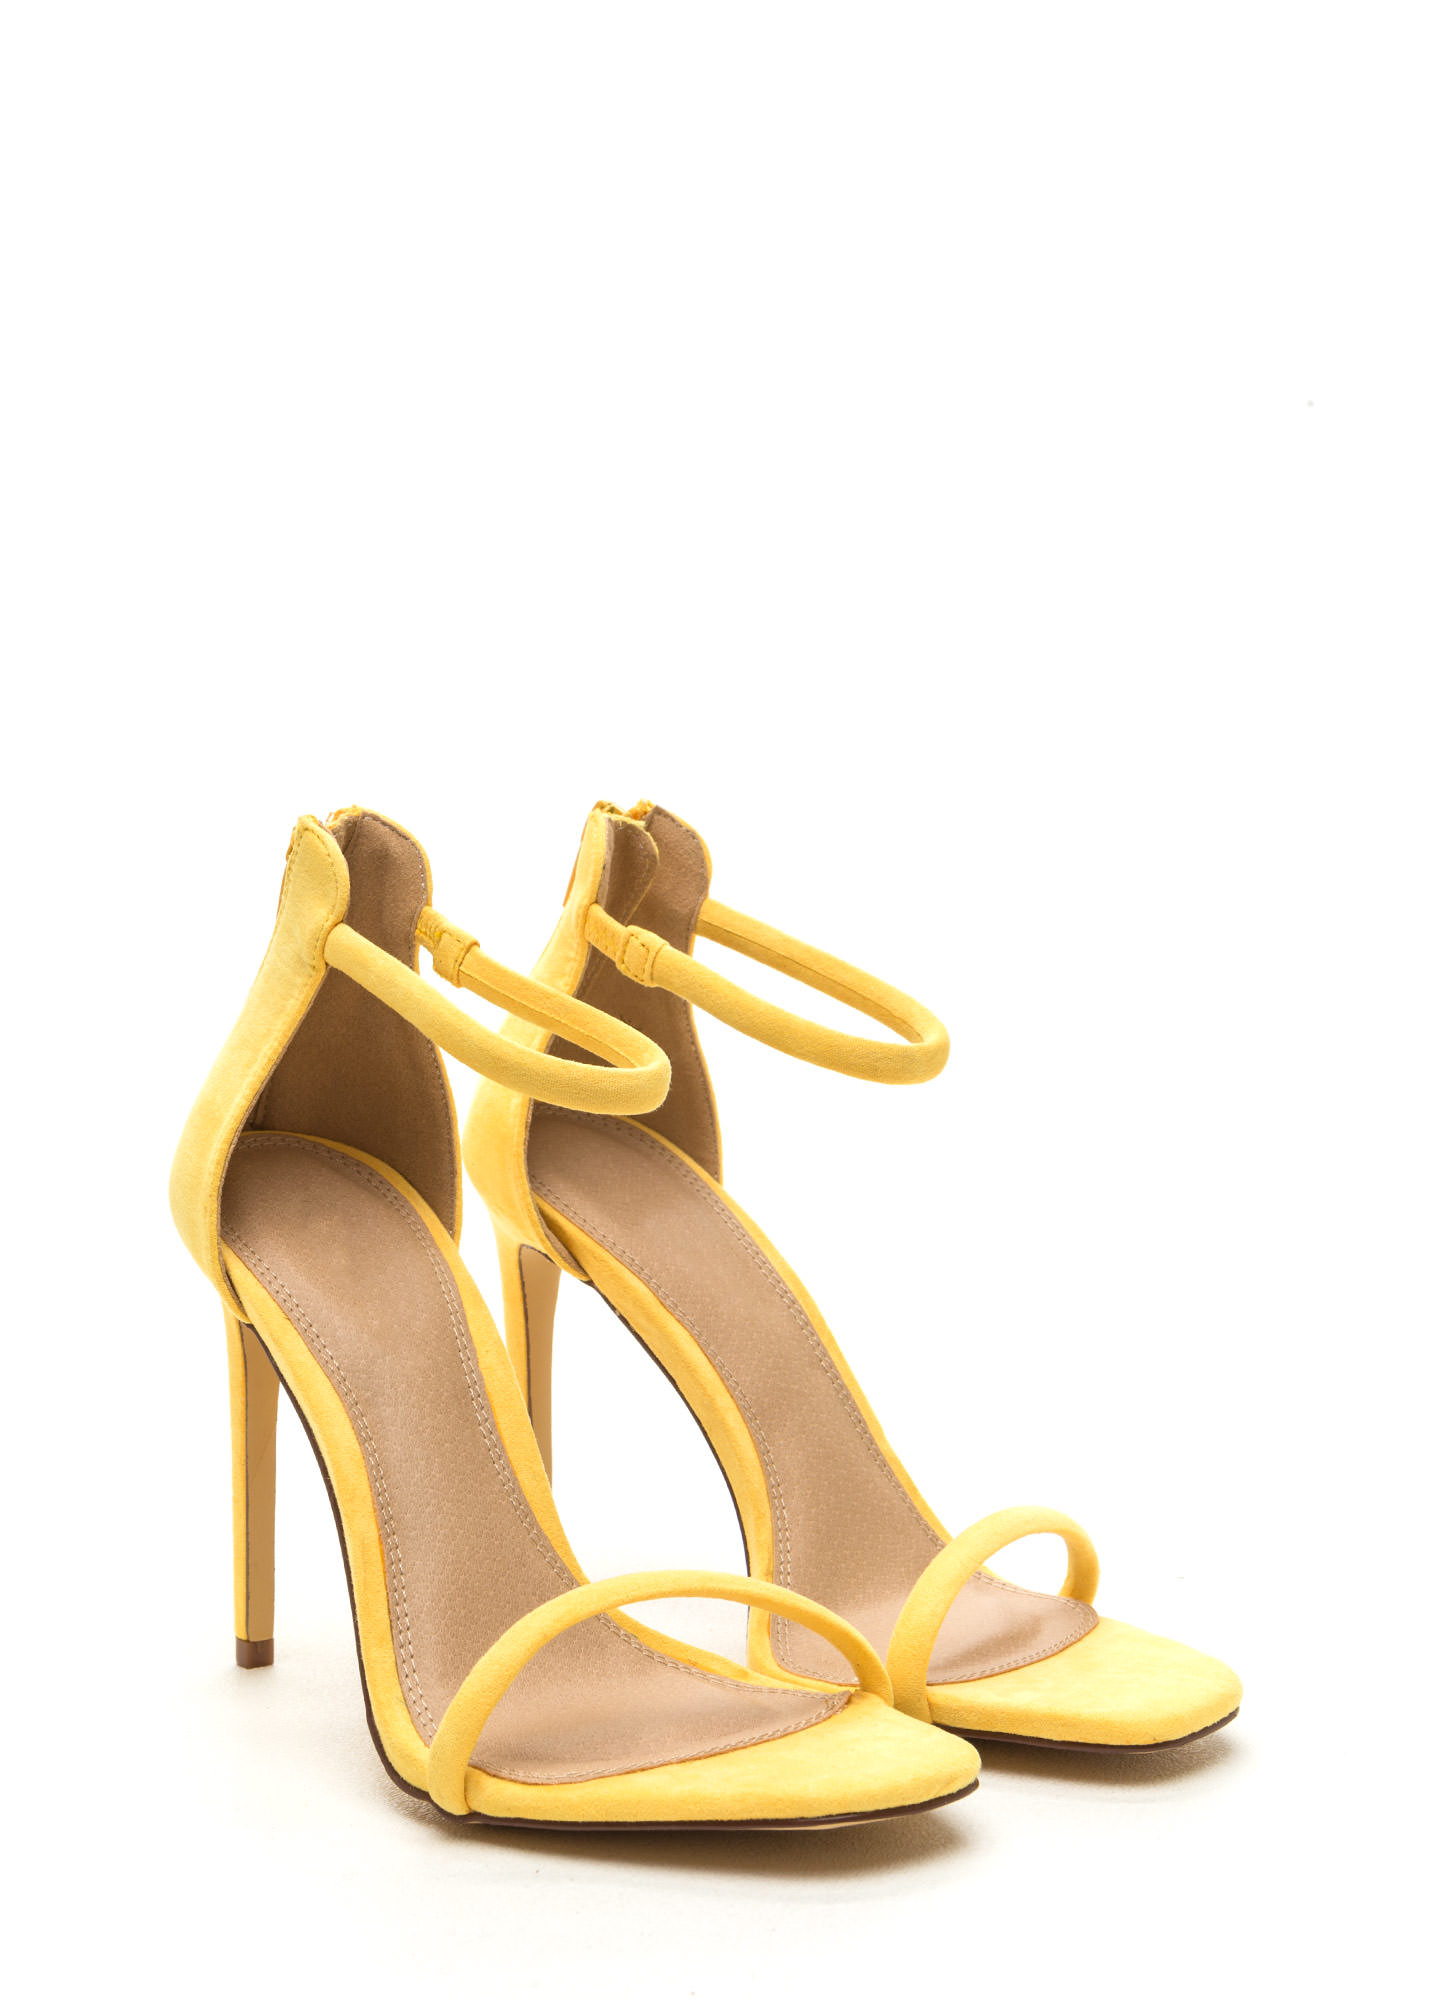 Just One Faux Suede Ankle Strap Heels YELLOW